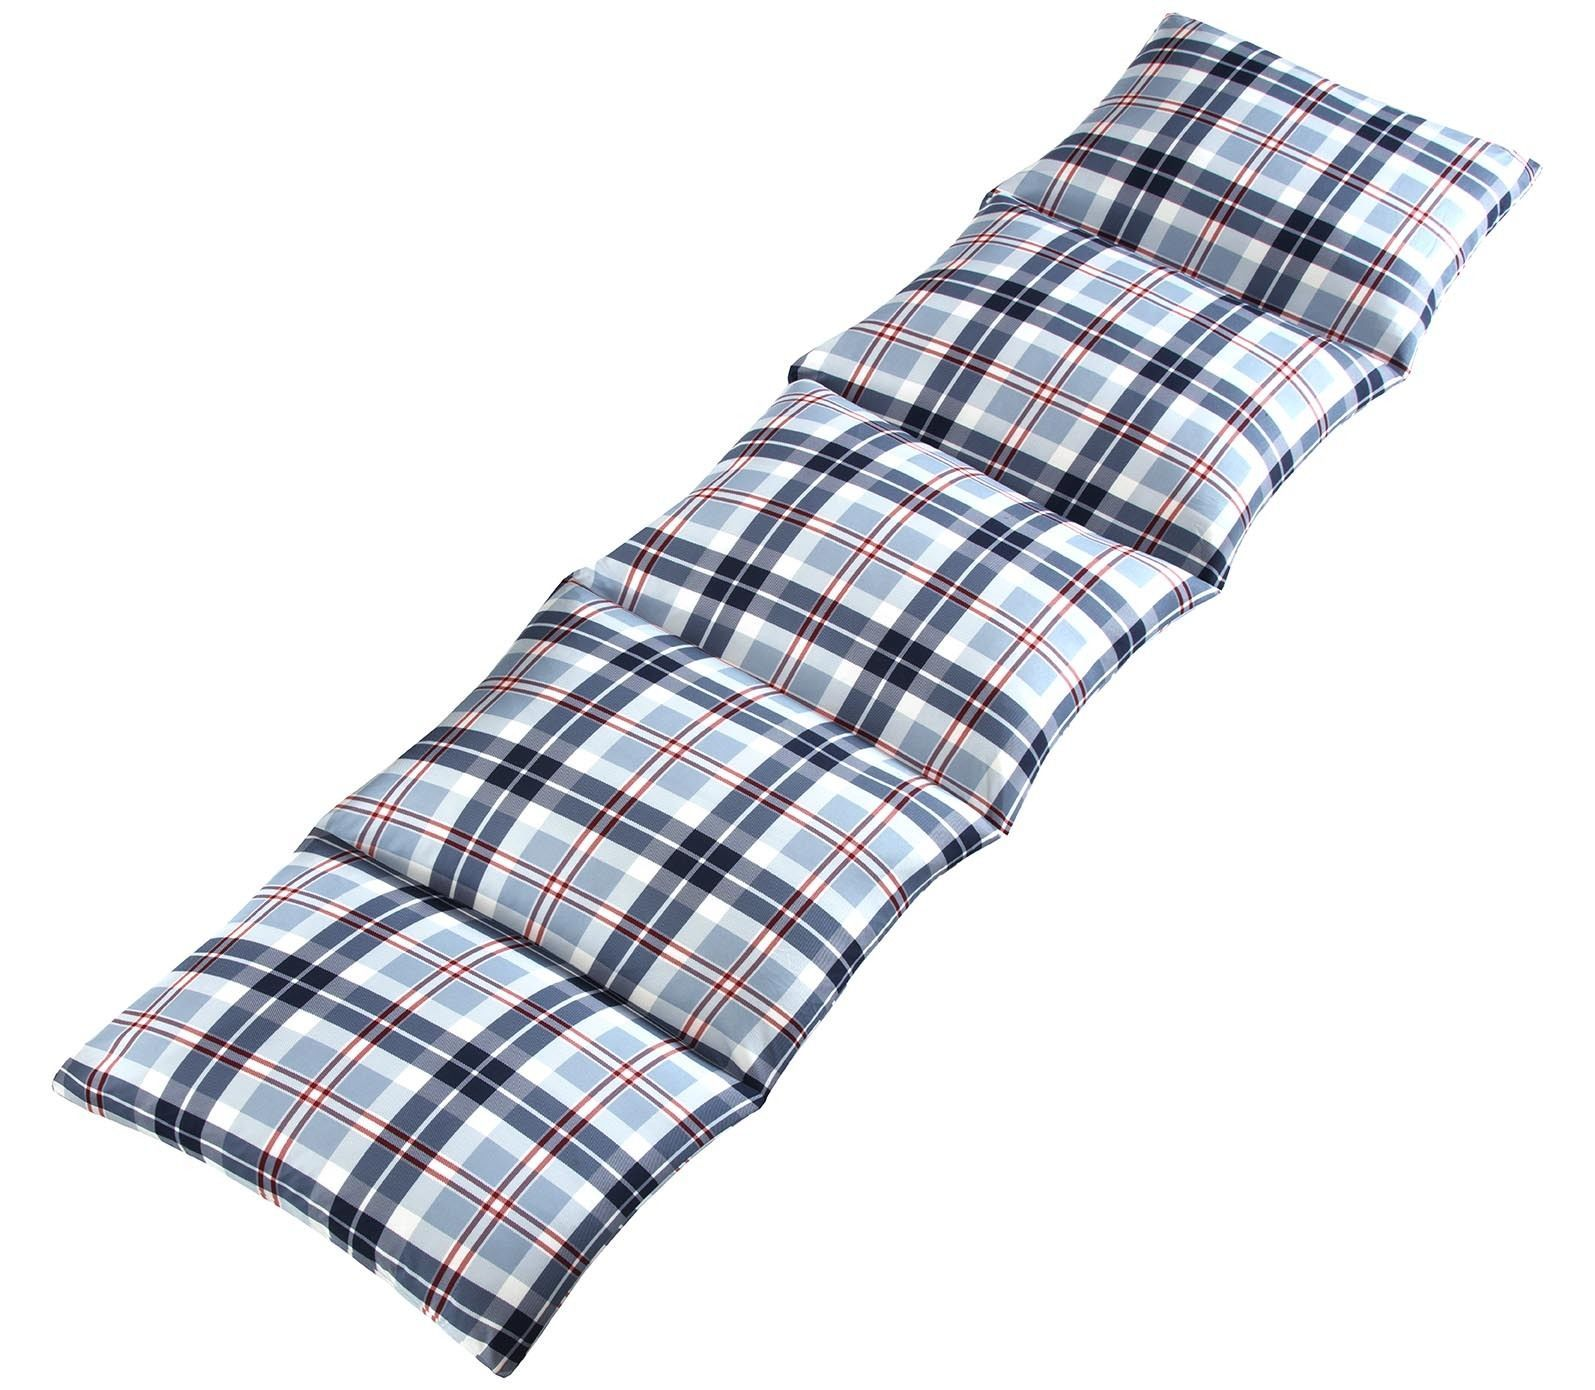 "Mizone MZ21-427 Elliot Caterpillow, 26 x 100"" Blue Sleeping Bag"